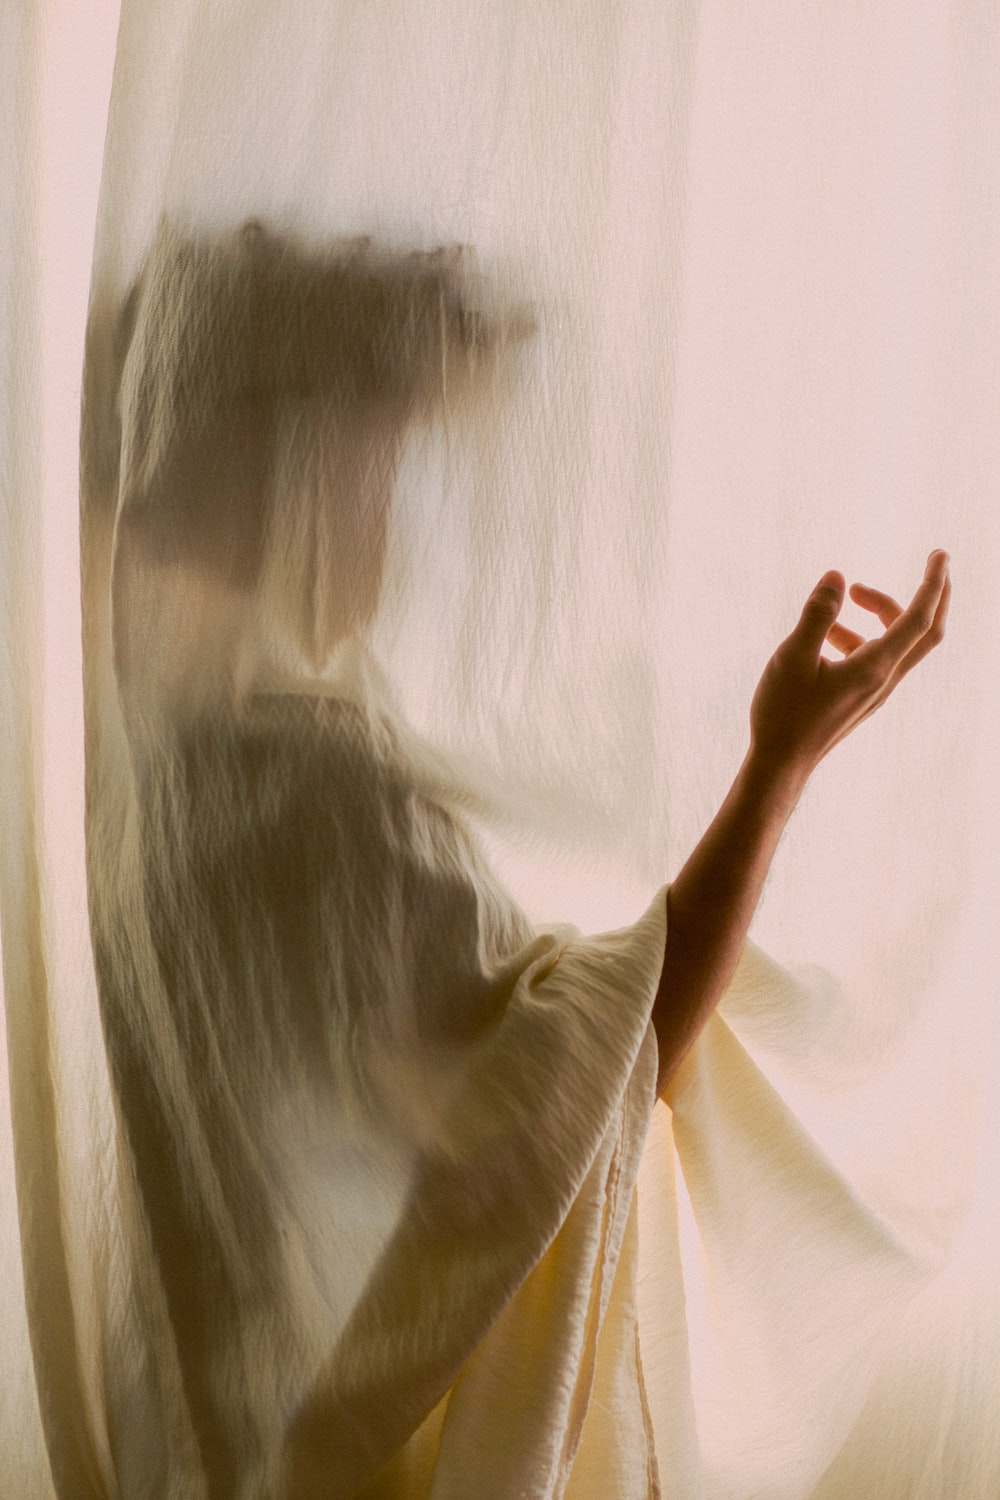 woman in white shirt covering her face